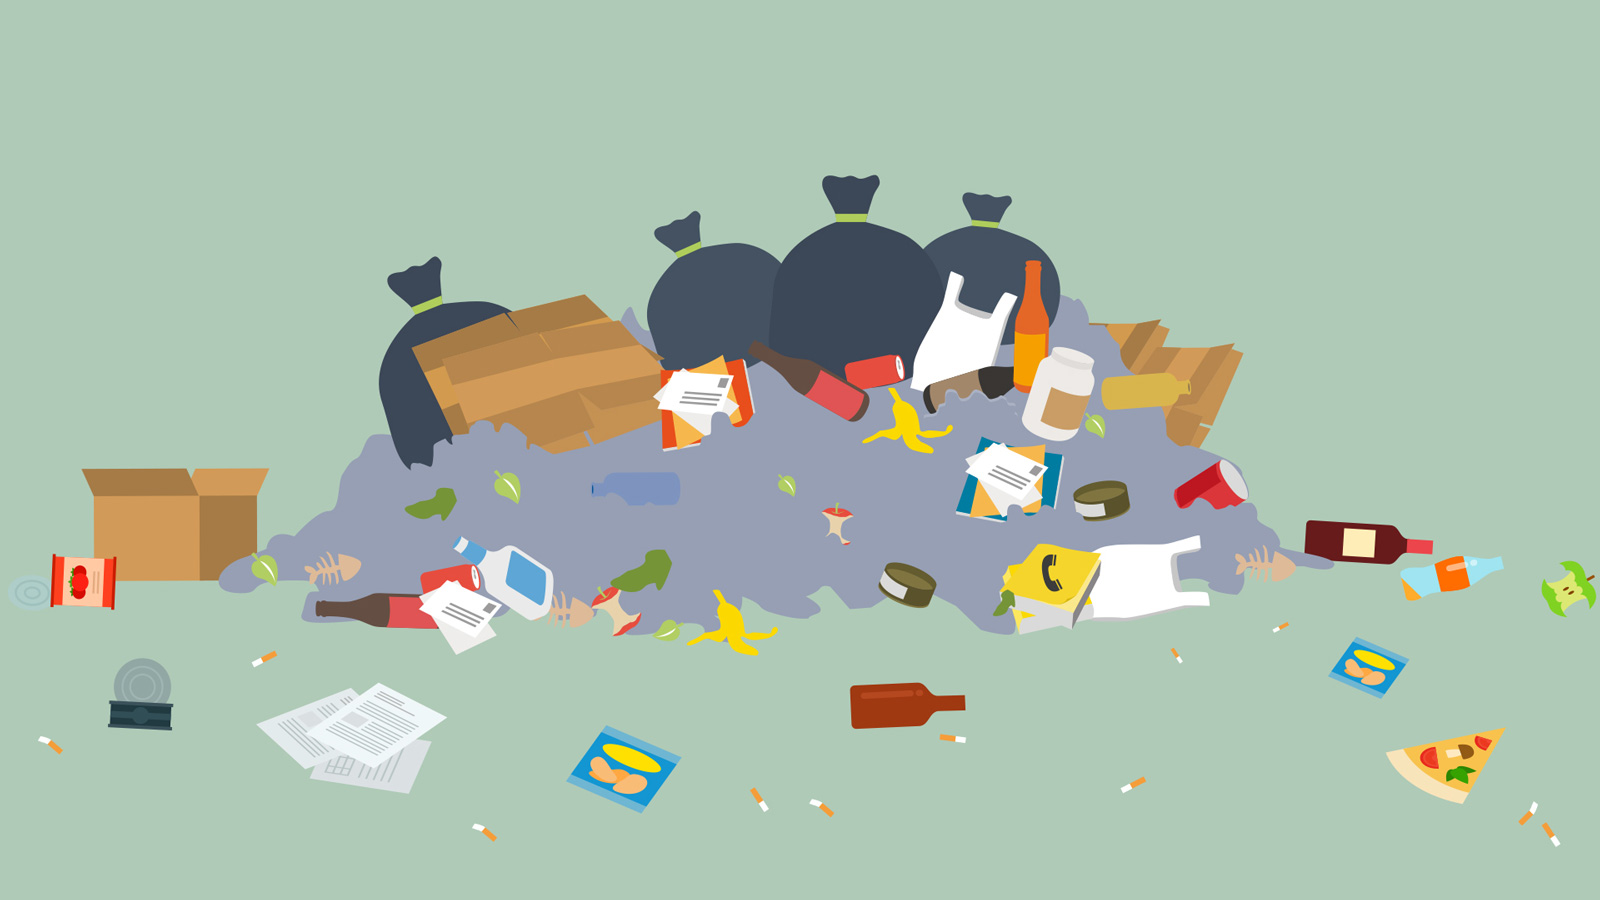 Illustration showing litter attracts more litter